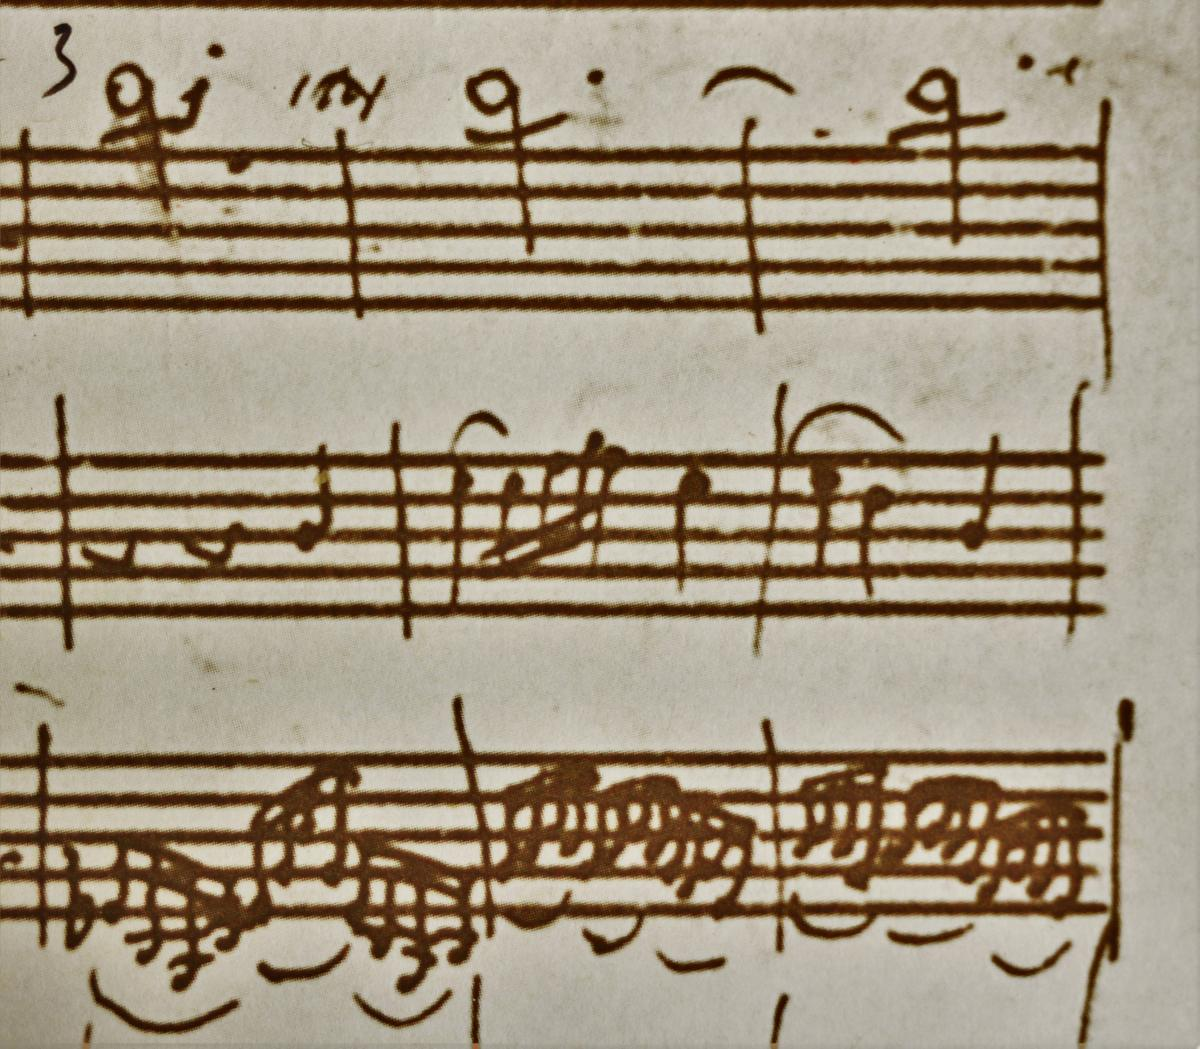 Five' (working title) A Mozart project | Peter Sheppard Skærved